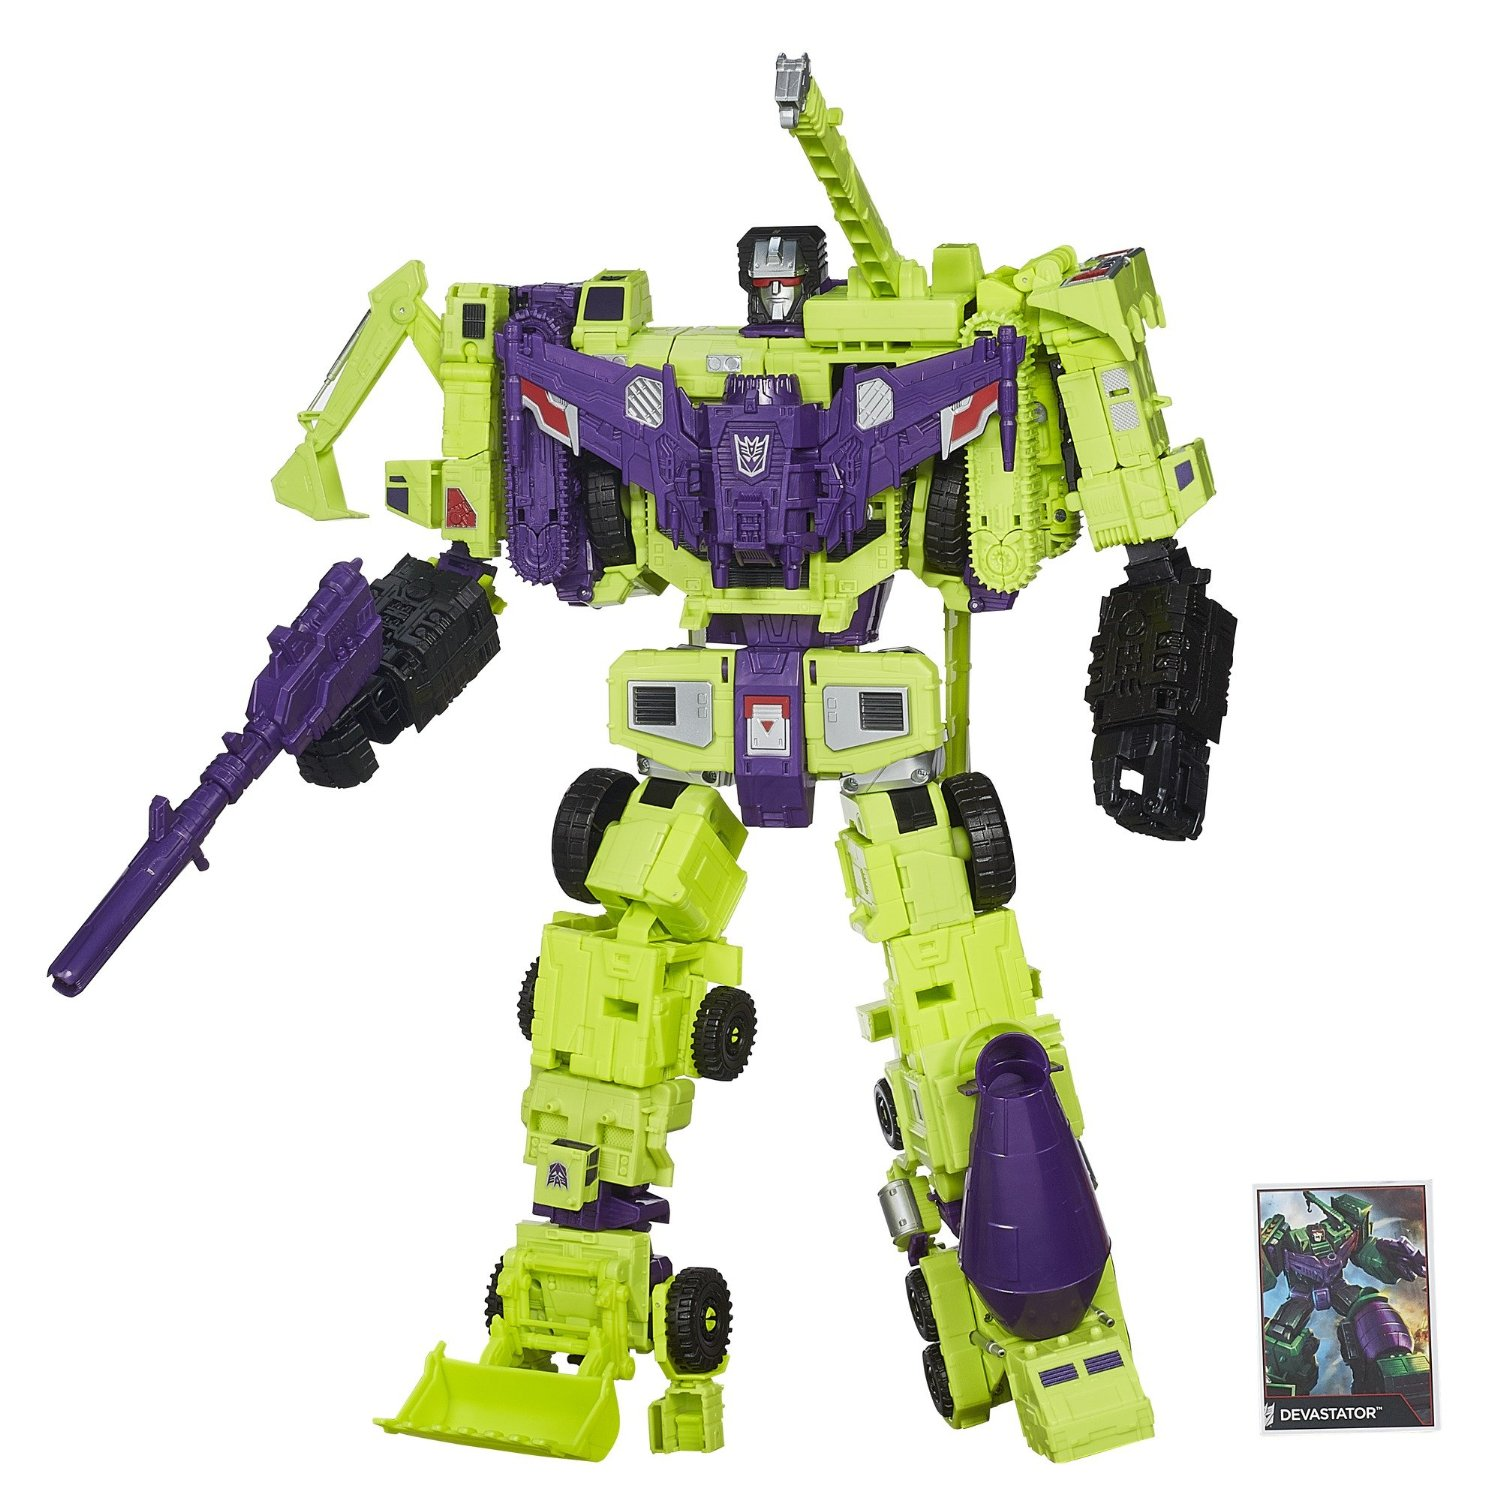 Combiner Wars Devastator Us Release Date Revealed On Amazon